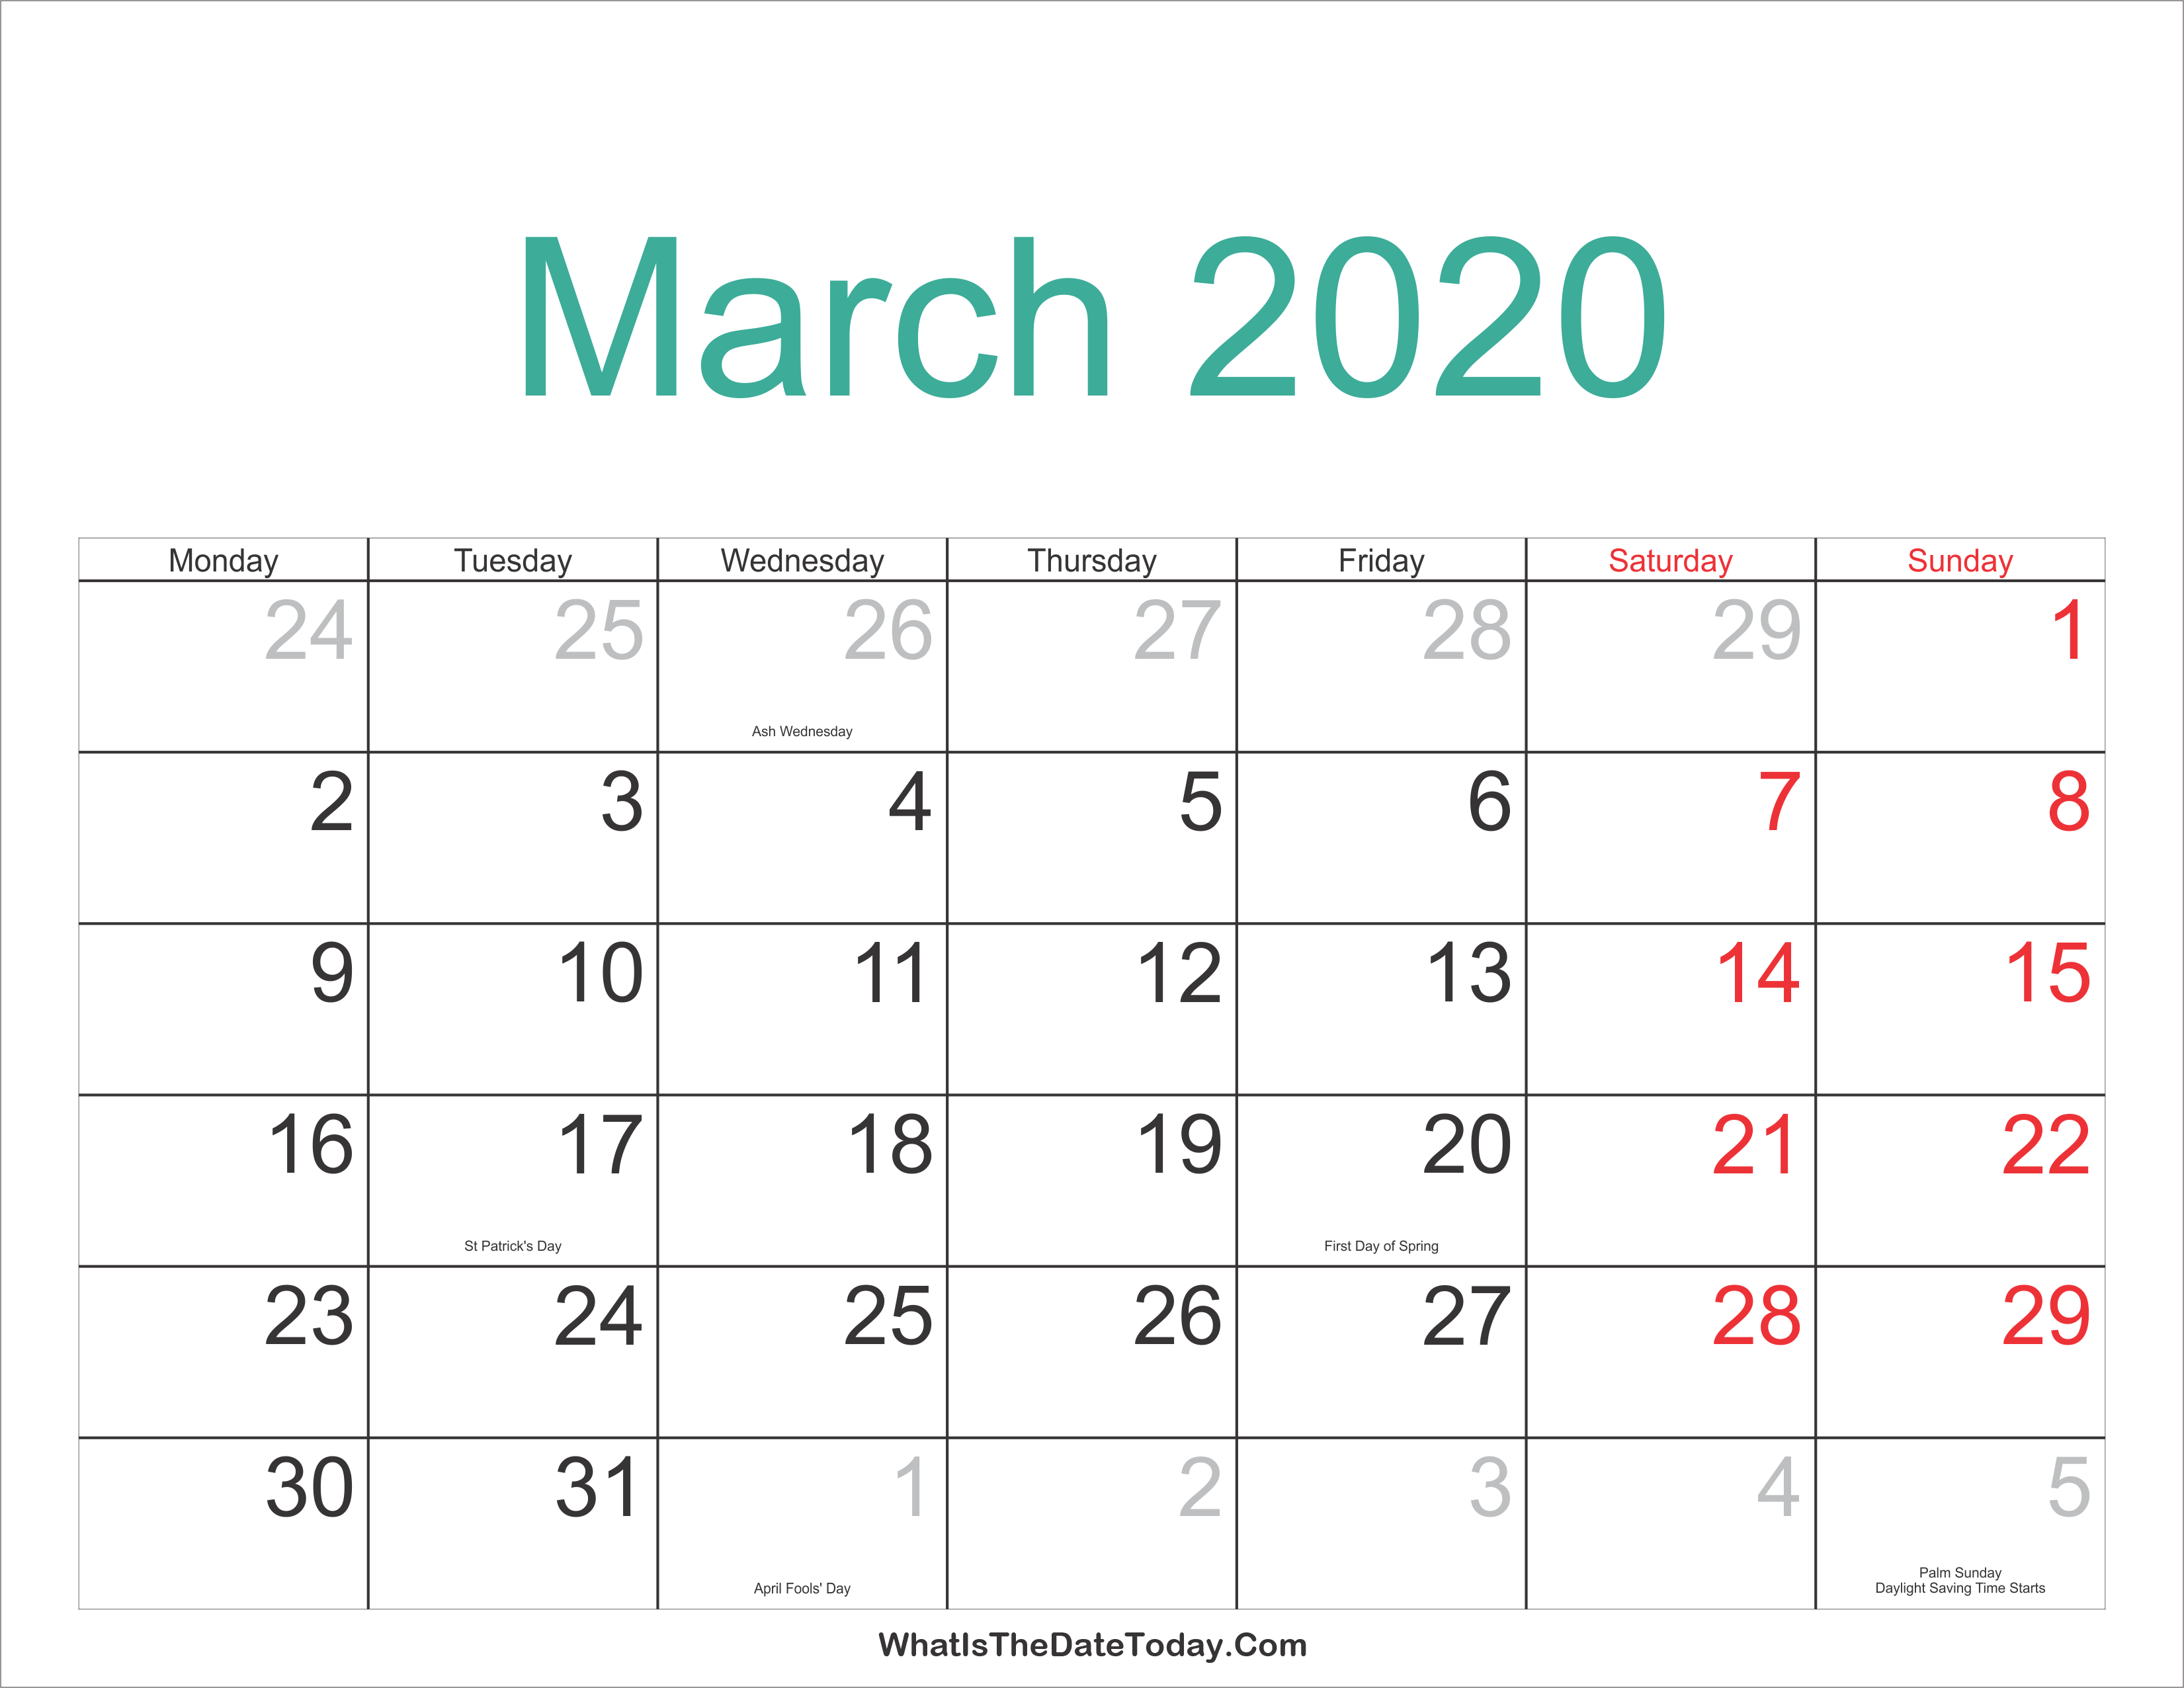 March 2020 Calendar With Holidays March 2020 Calendar Printable with Holidays | Whatisthedatetoday.Com